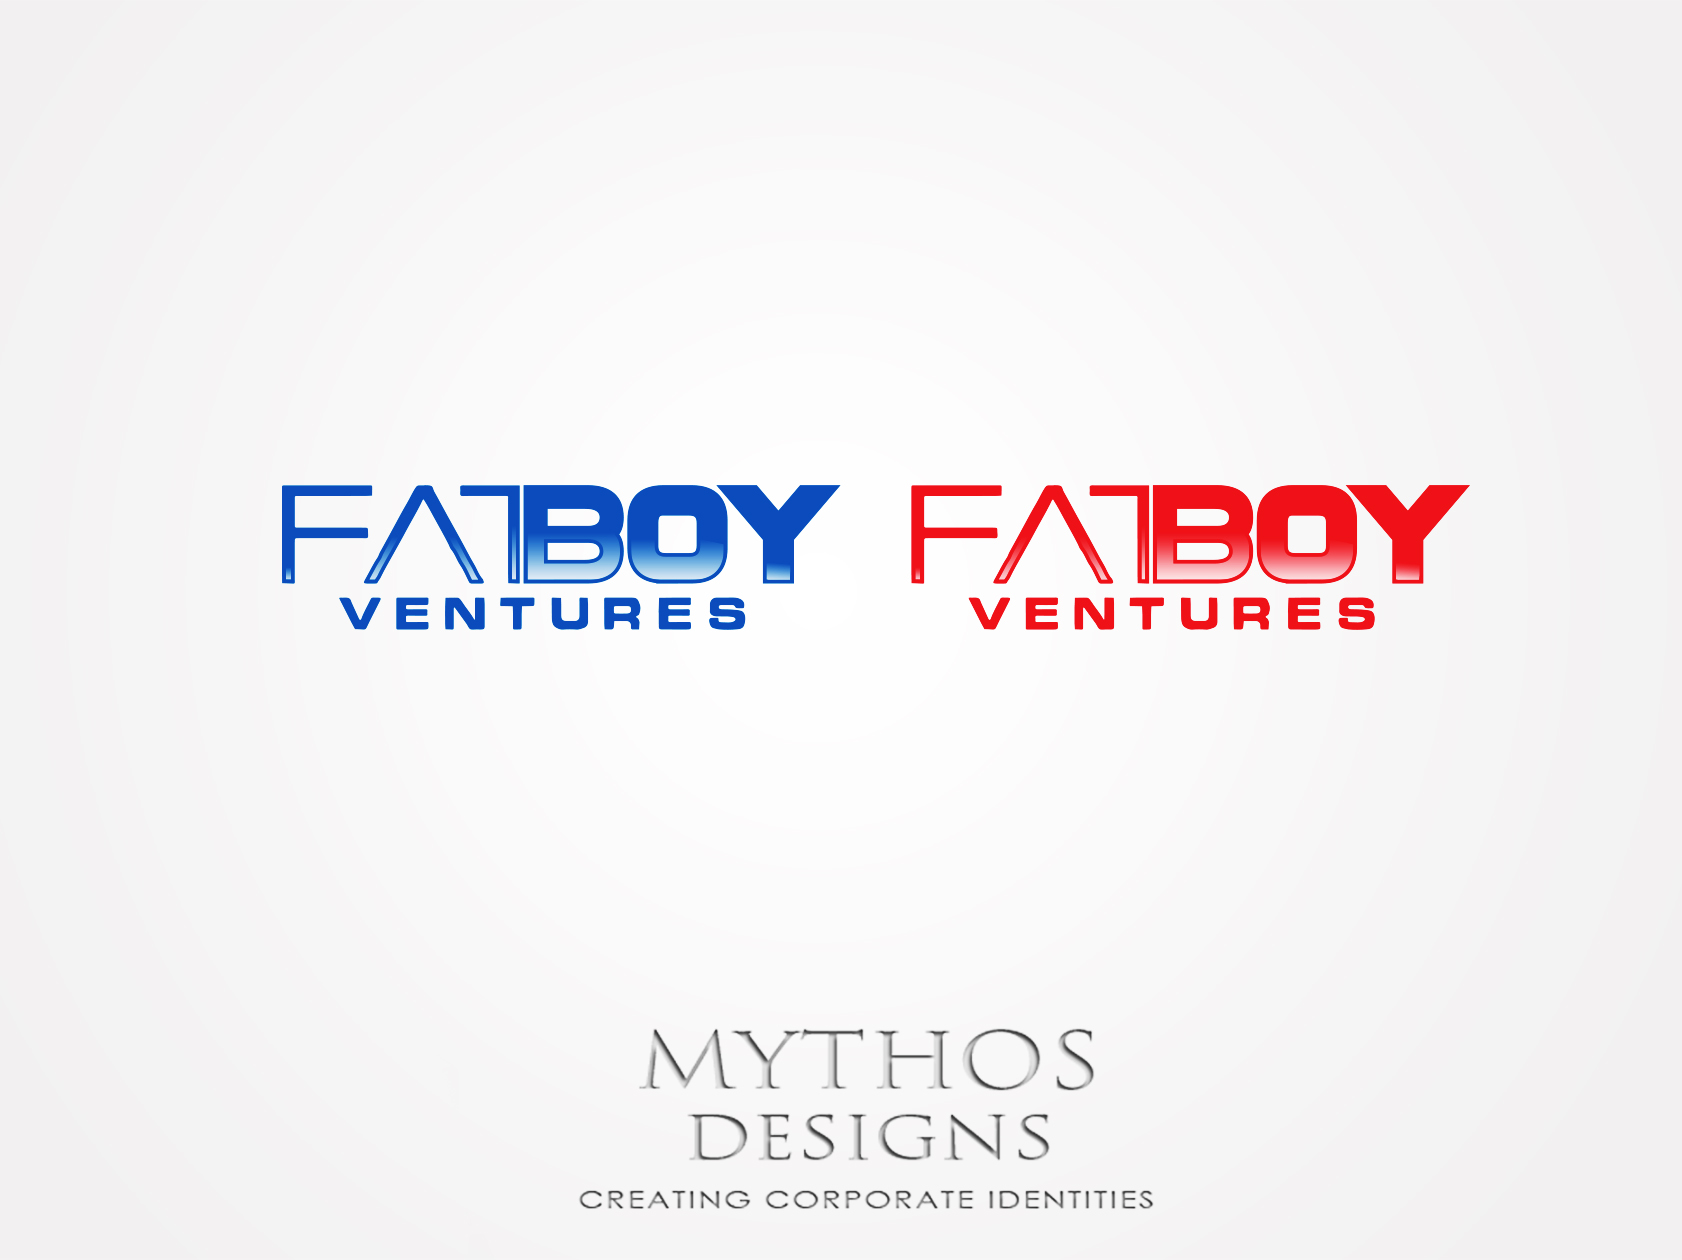 Logo Design by Mythos Designs - Entry No. 116 in the Logo Design Contest Fun Logo Design for Fat Boy Ventures.